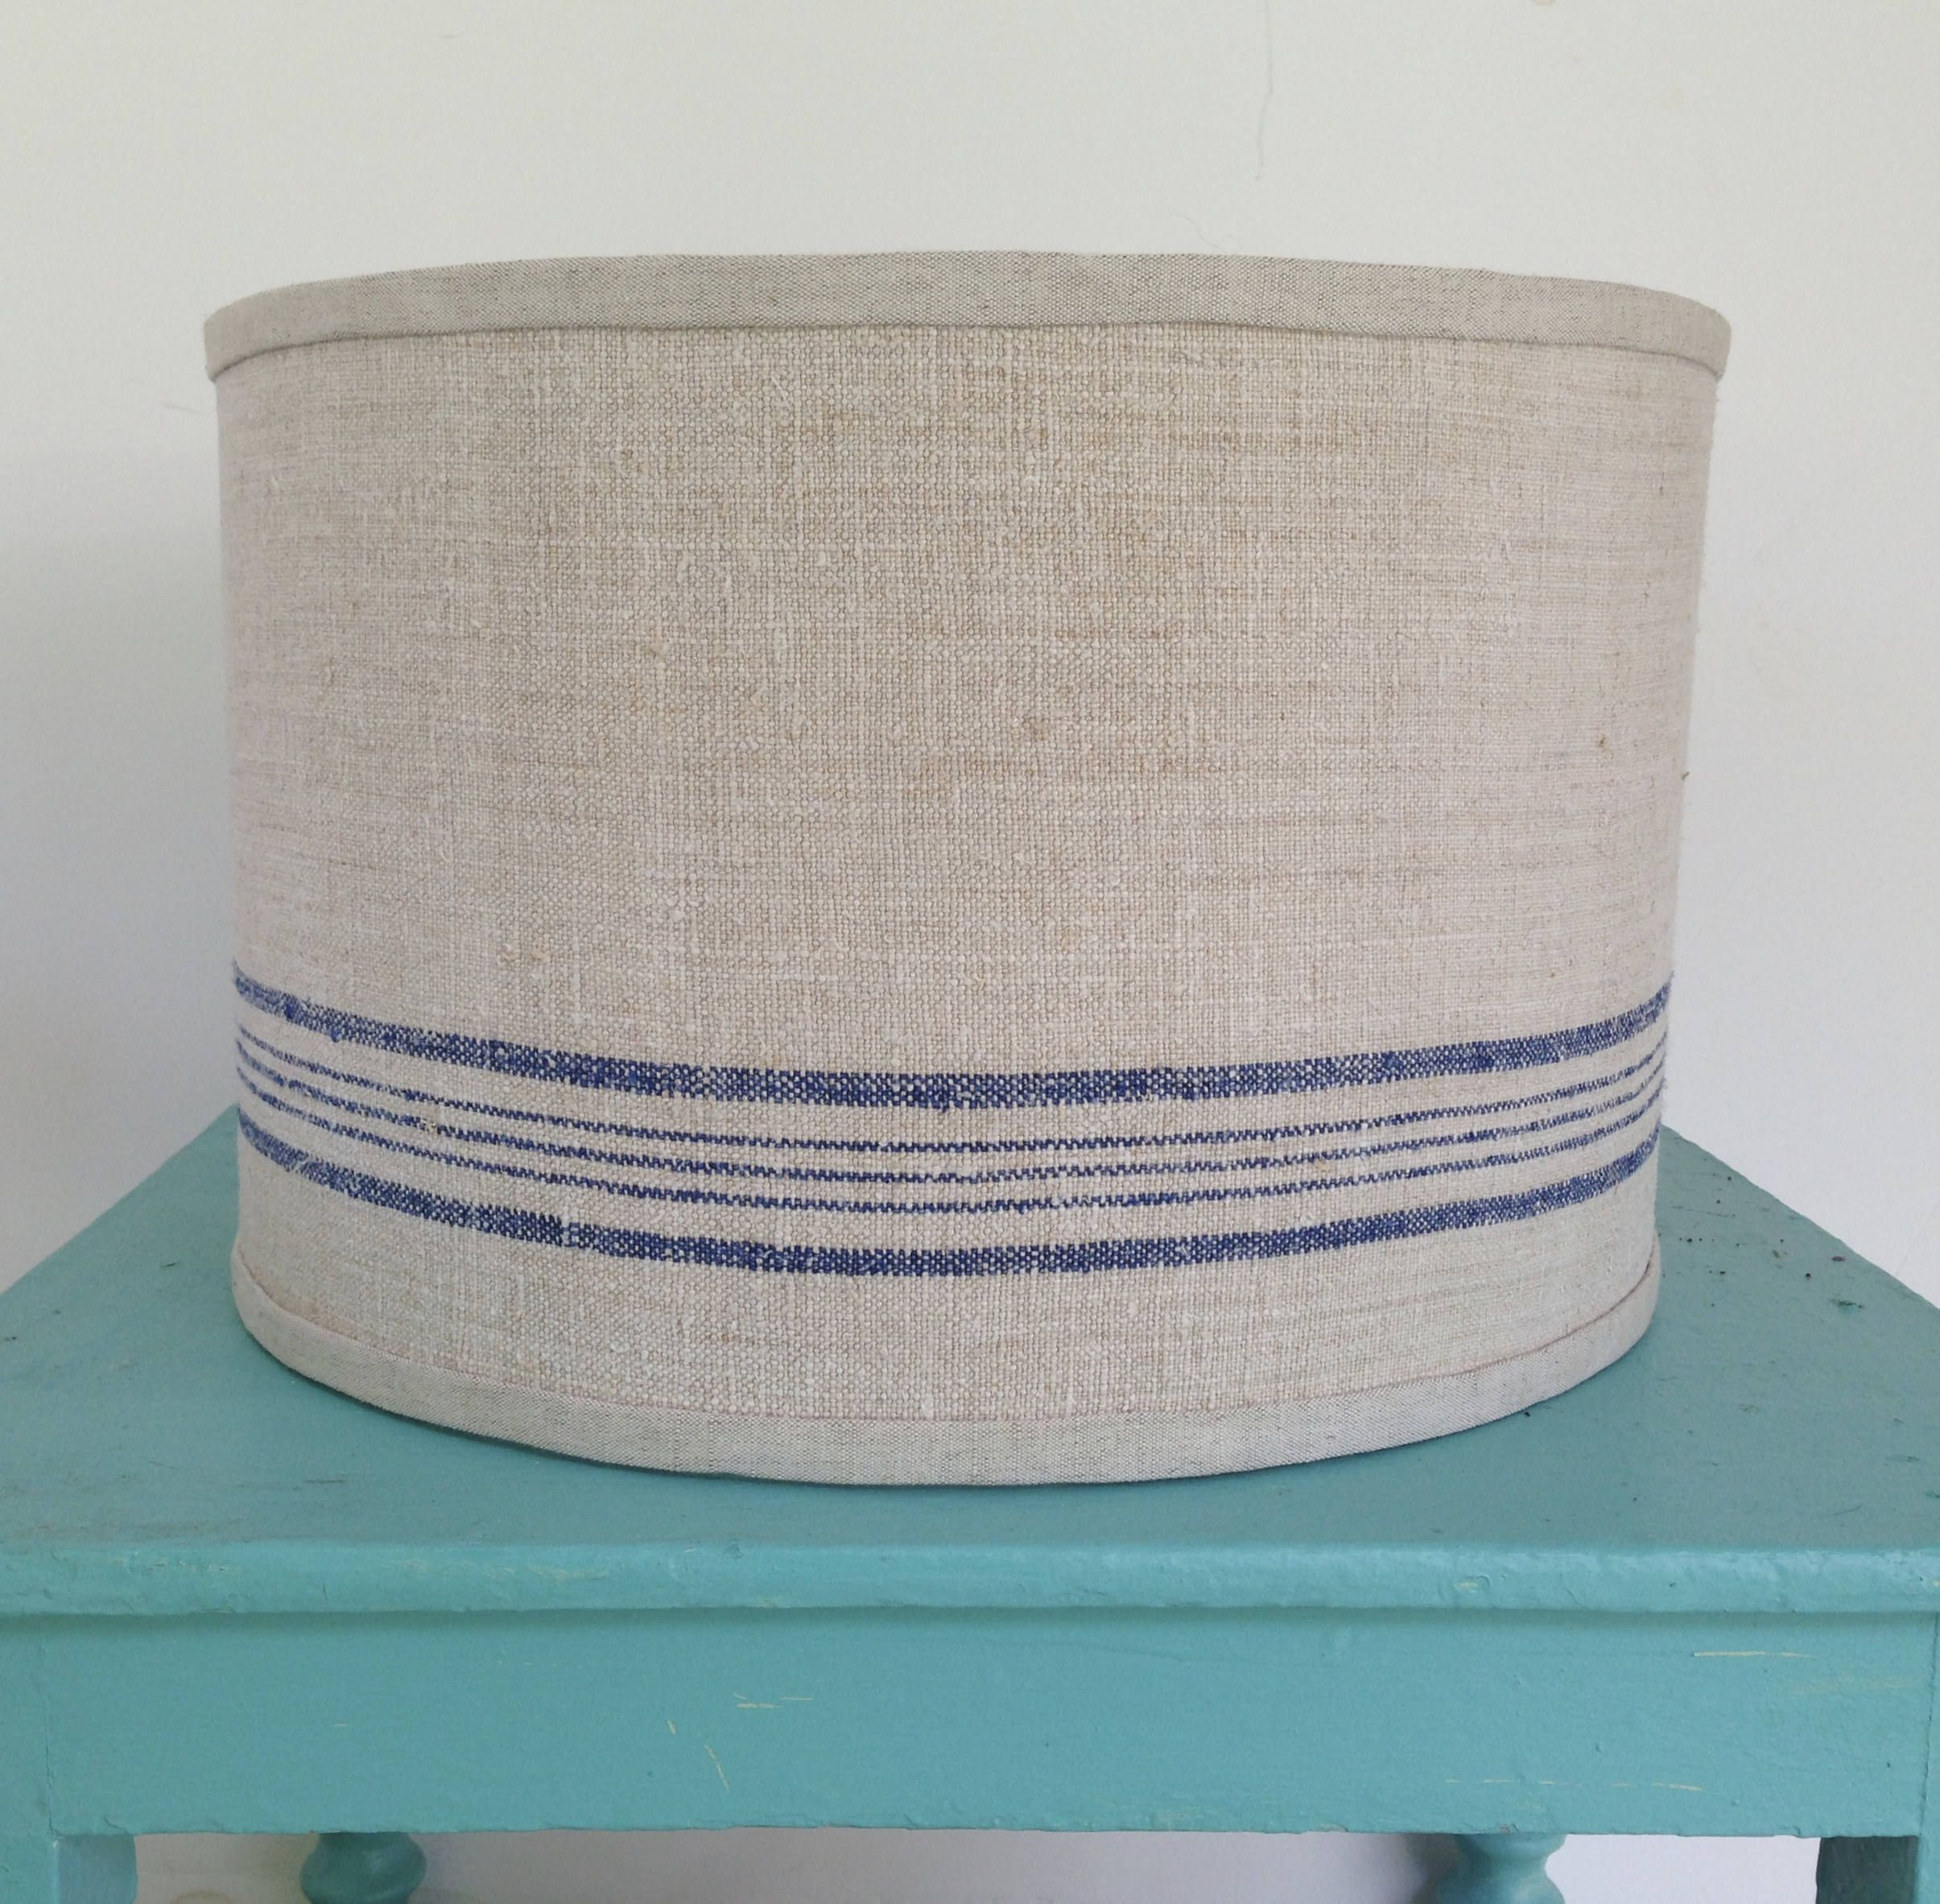 Blue Stripe Drum Lamp Shade Lampshade Pendant Nautical Table Floor Vintage Grain Sack Fabric Large By Lampshadelady On